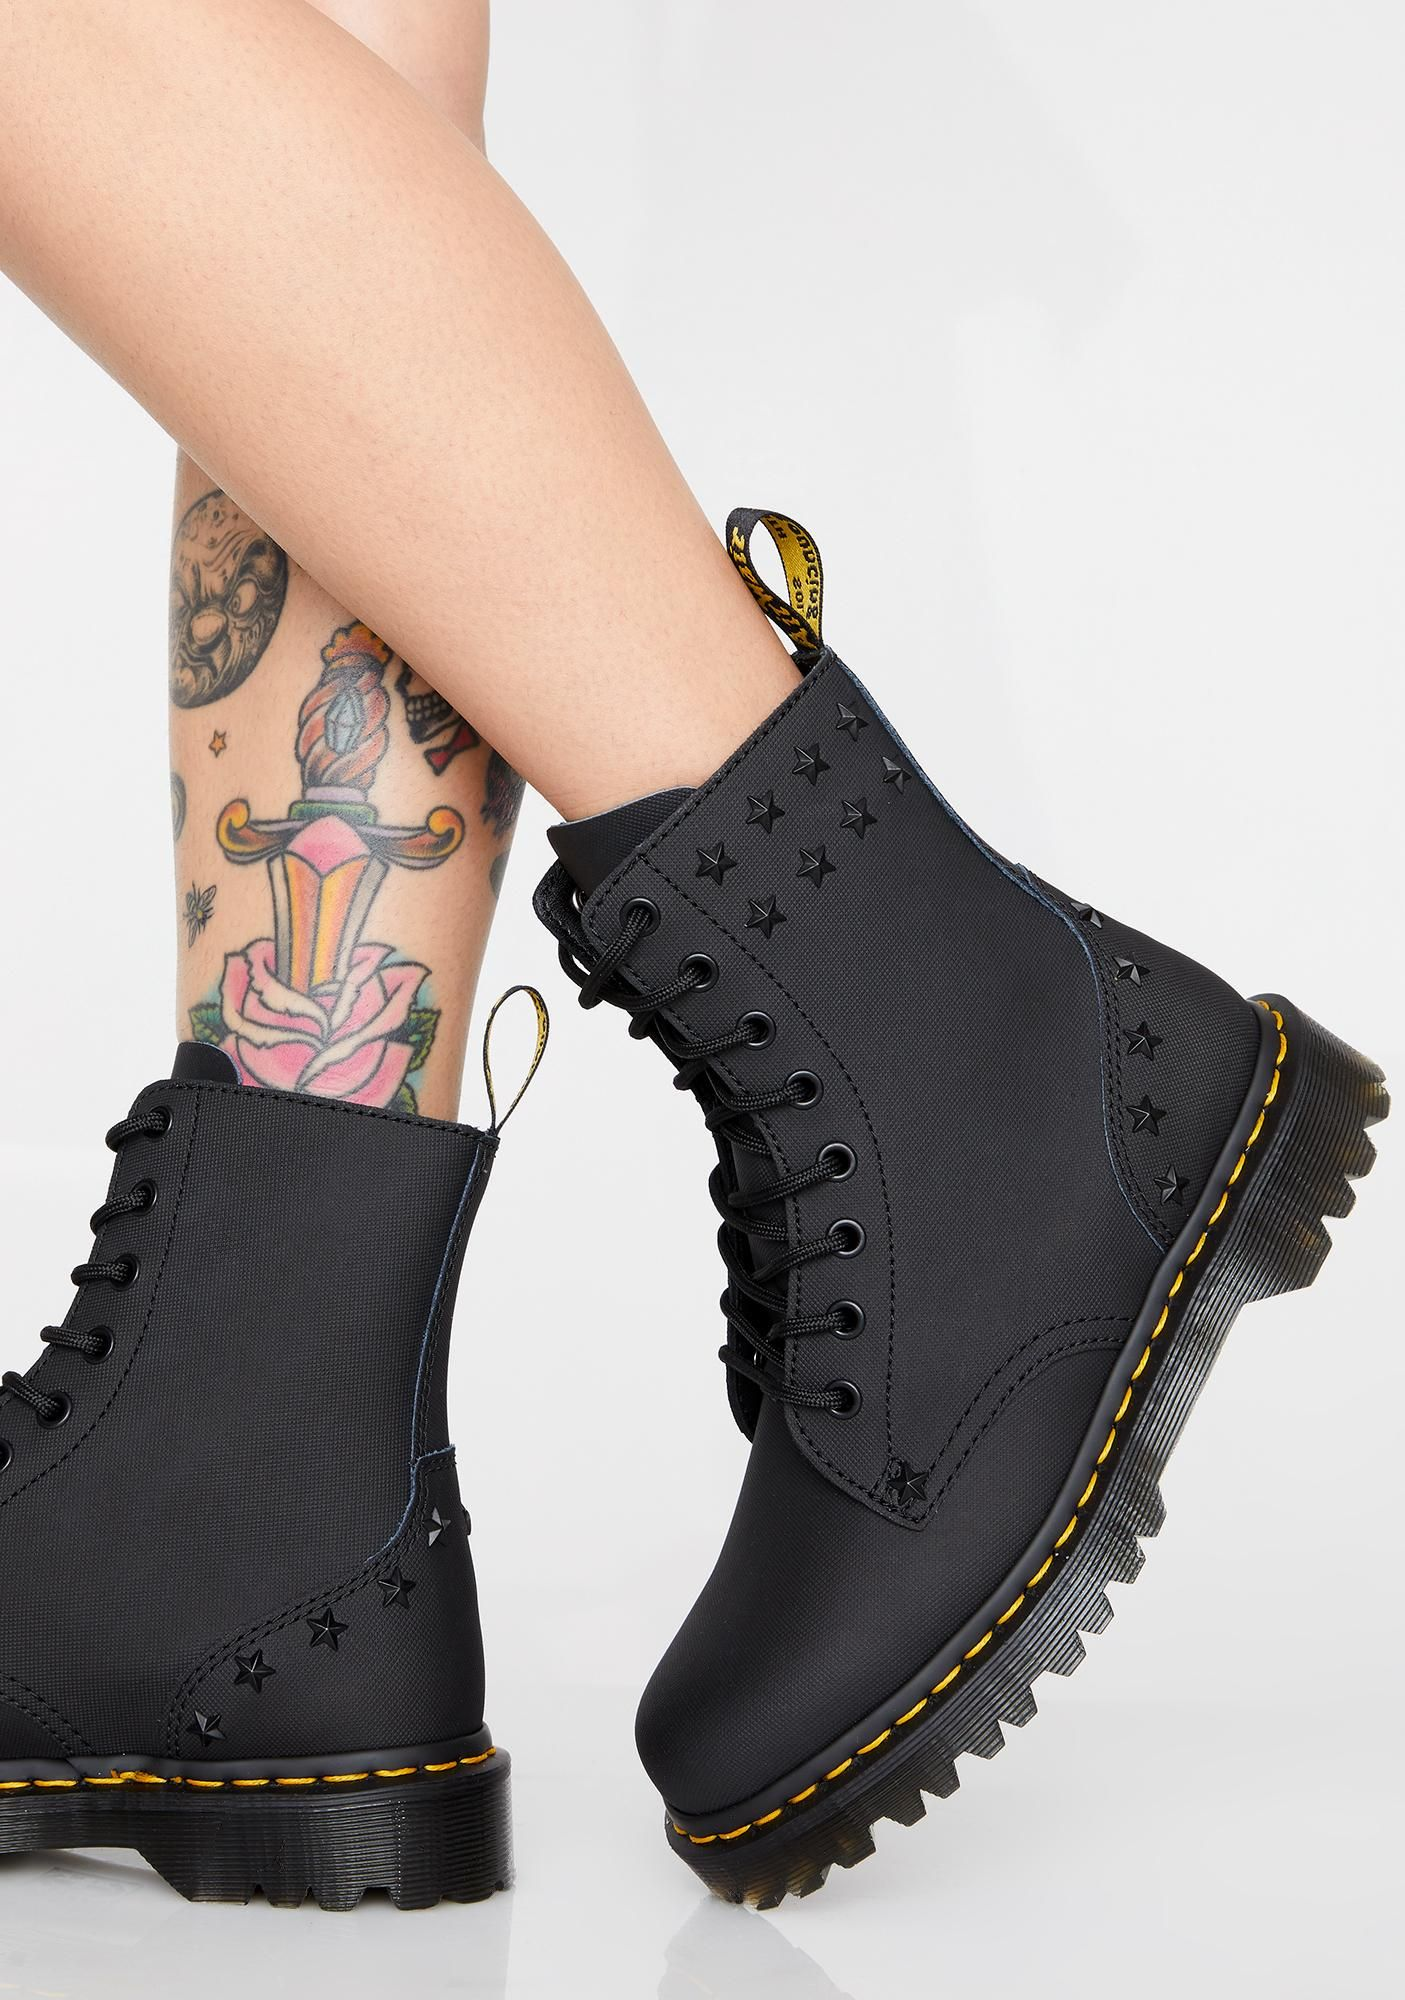 dr martens black friday sale 2020